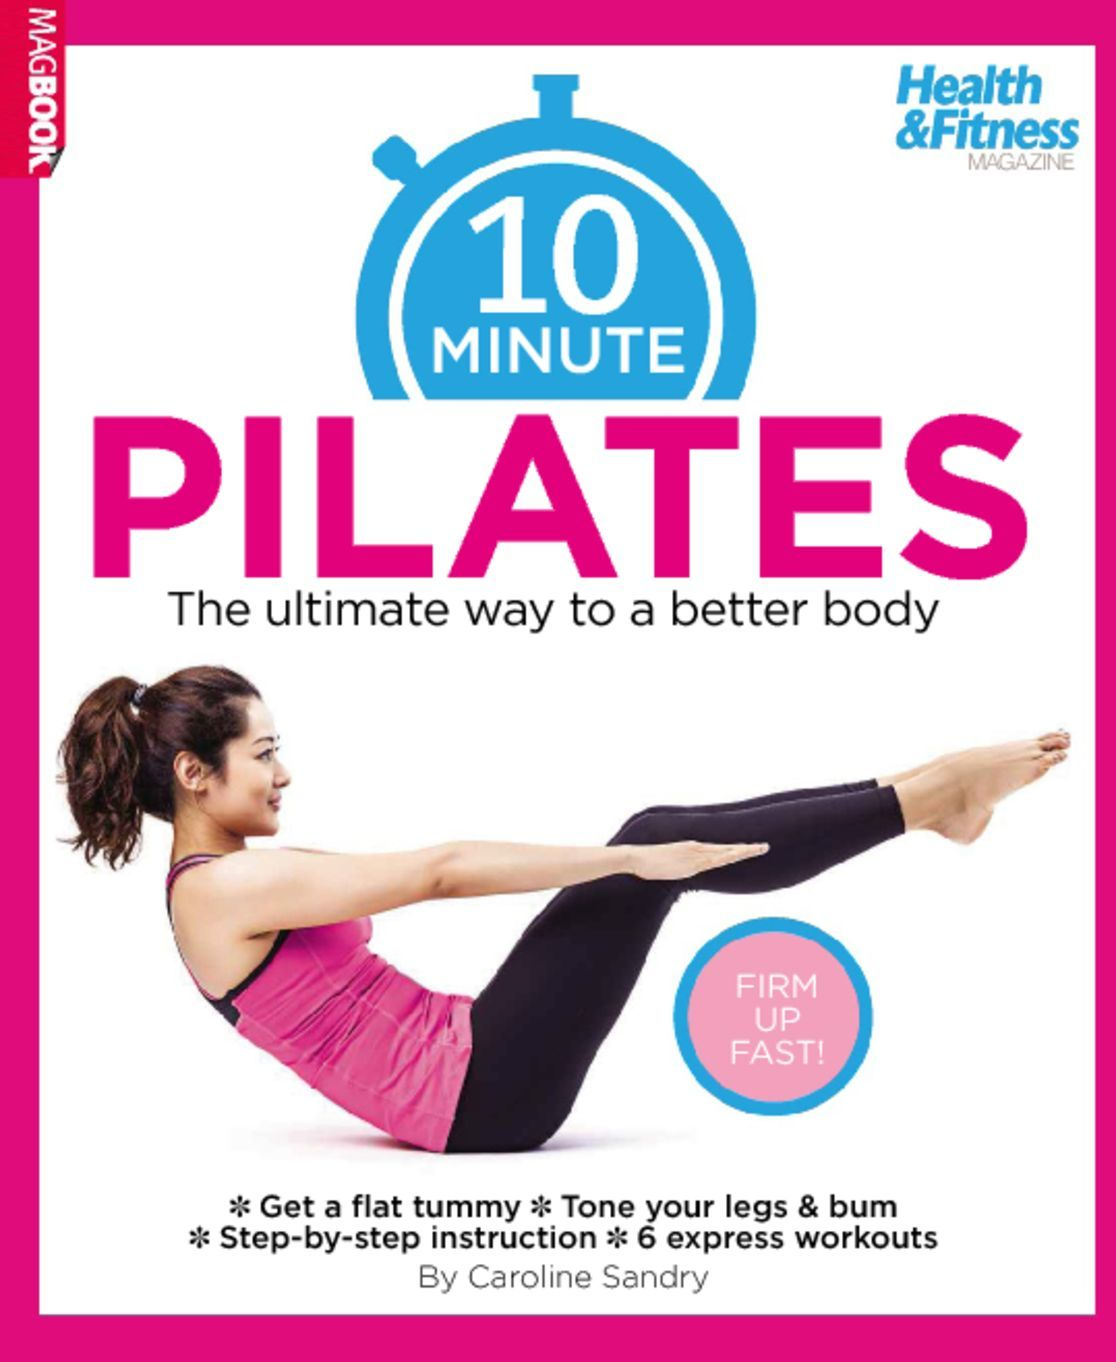 10 Minute Pilates Digital